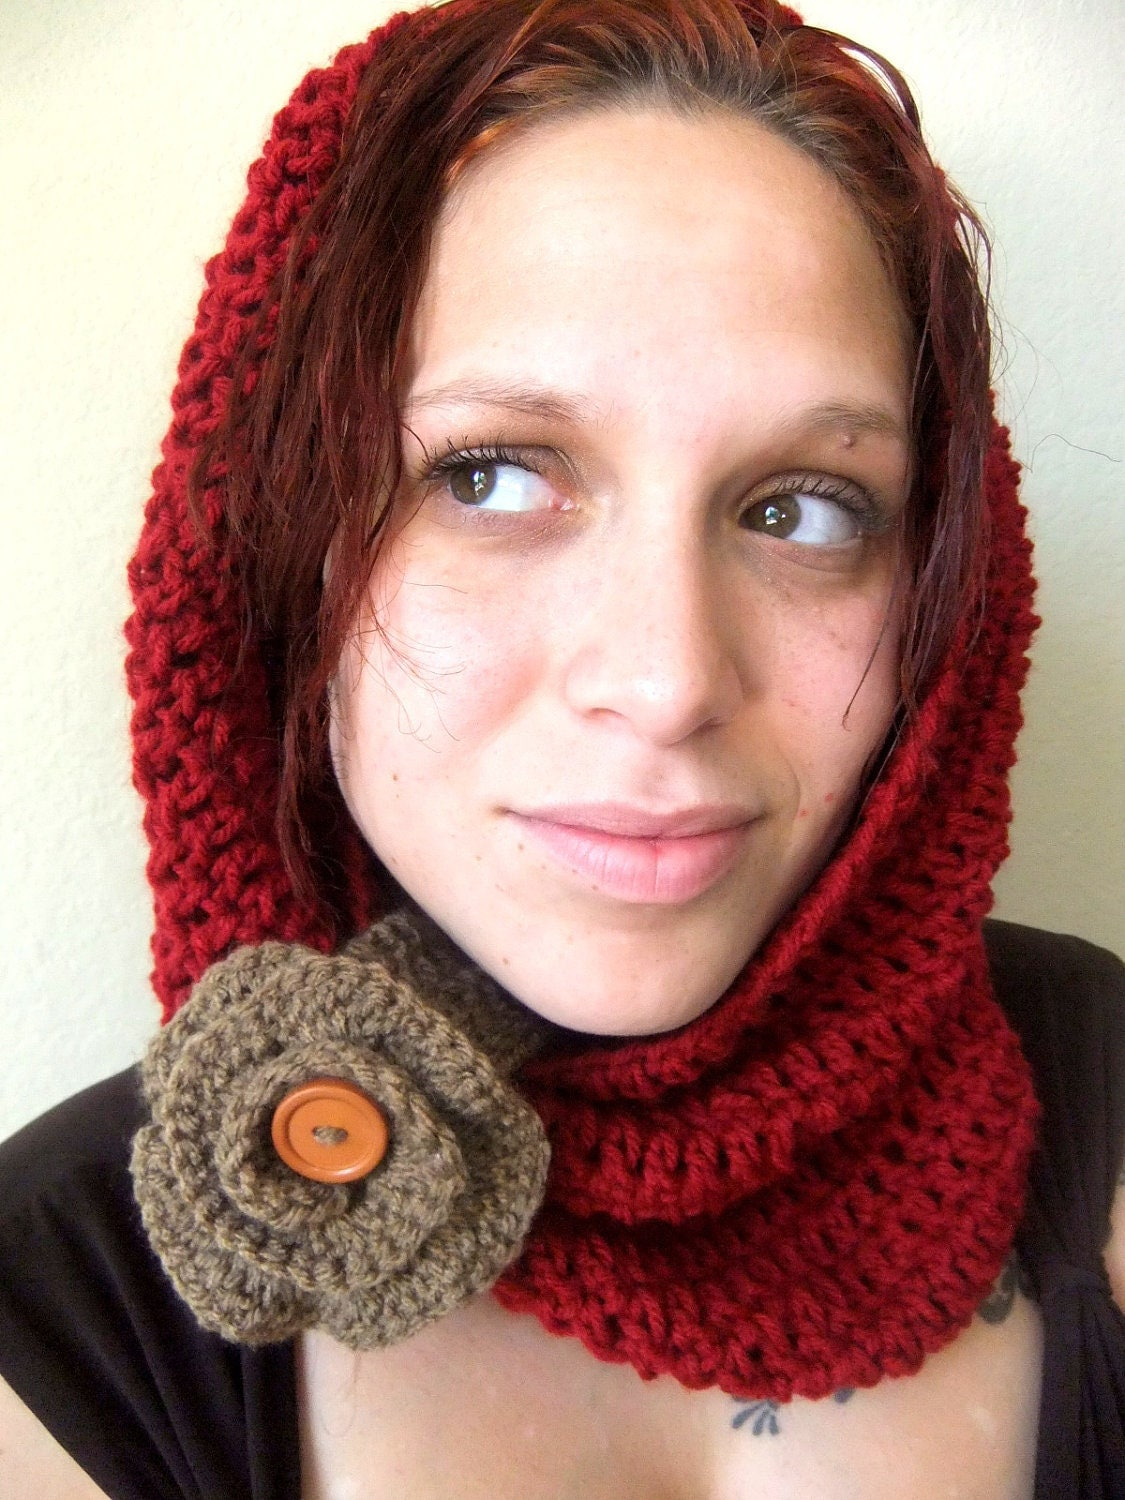 Red and Taupe, Cafe, Brown, Flower, Crochet, Cowl, Neck Warmer, Scarf, Accessory, Gift, Holiday, Woman, Teen, Warm, Cozy, Fashionable